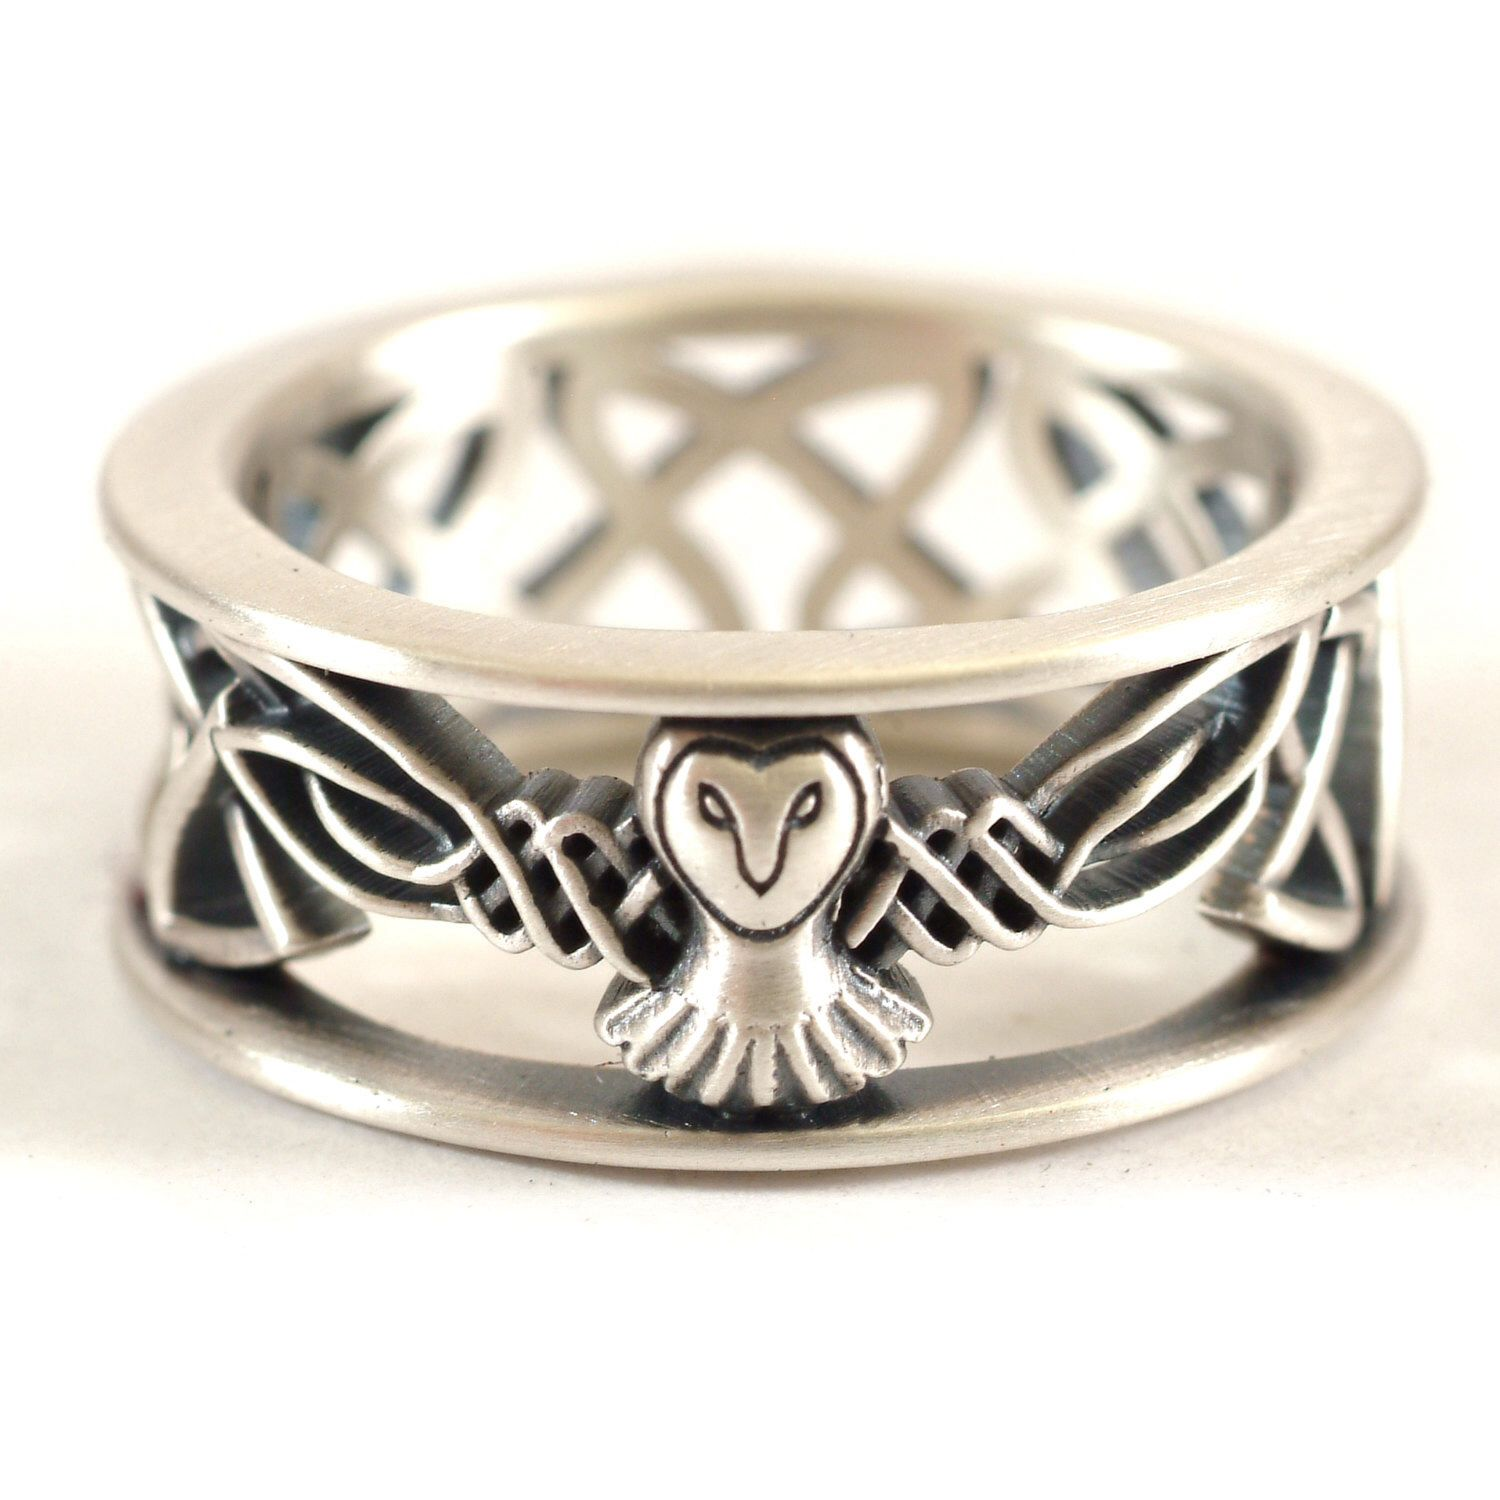 rings bands wedding gaelic jewelry jerezwine knot celtic ring promise